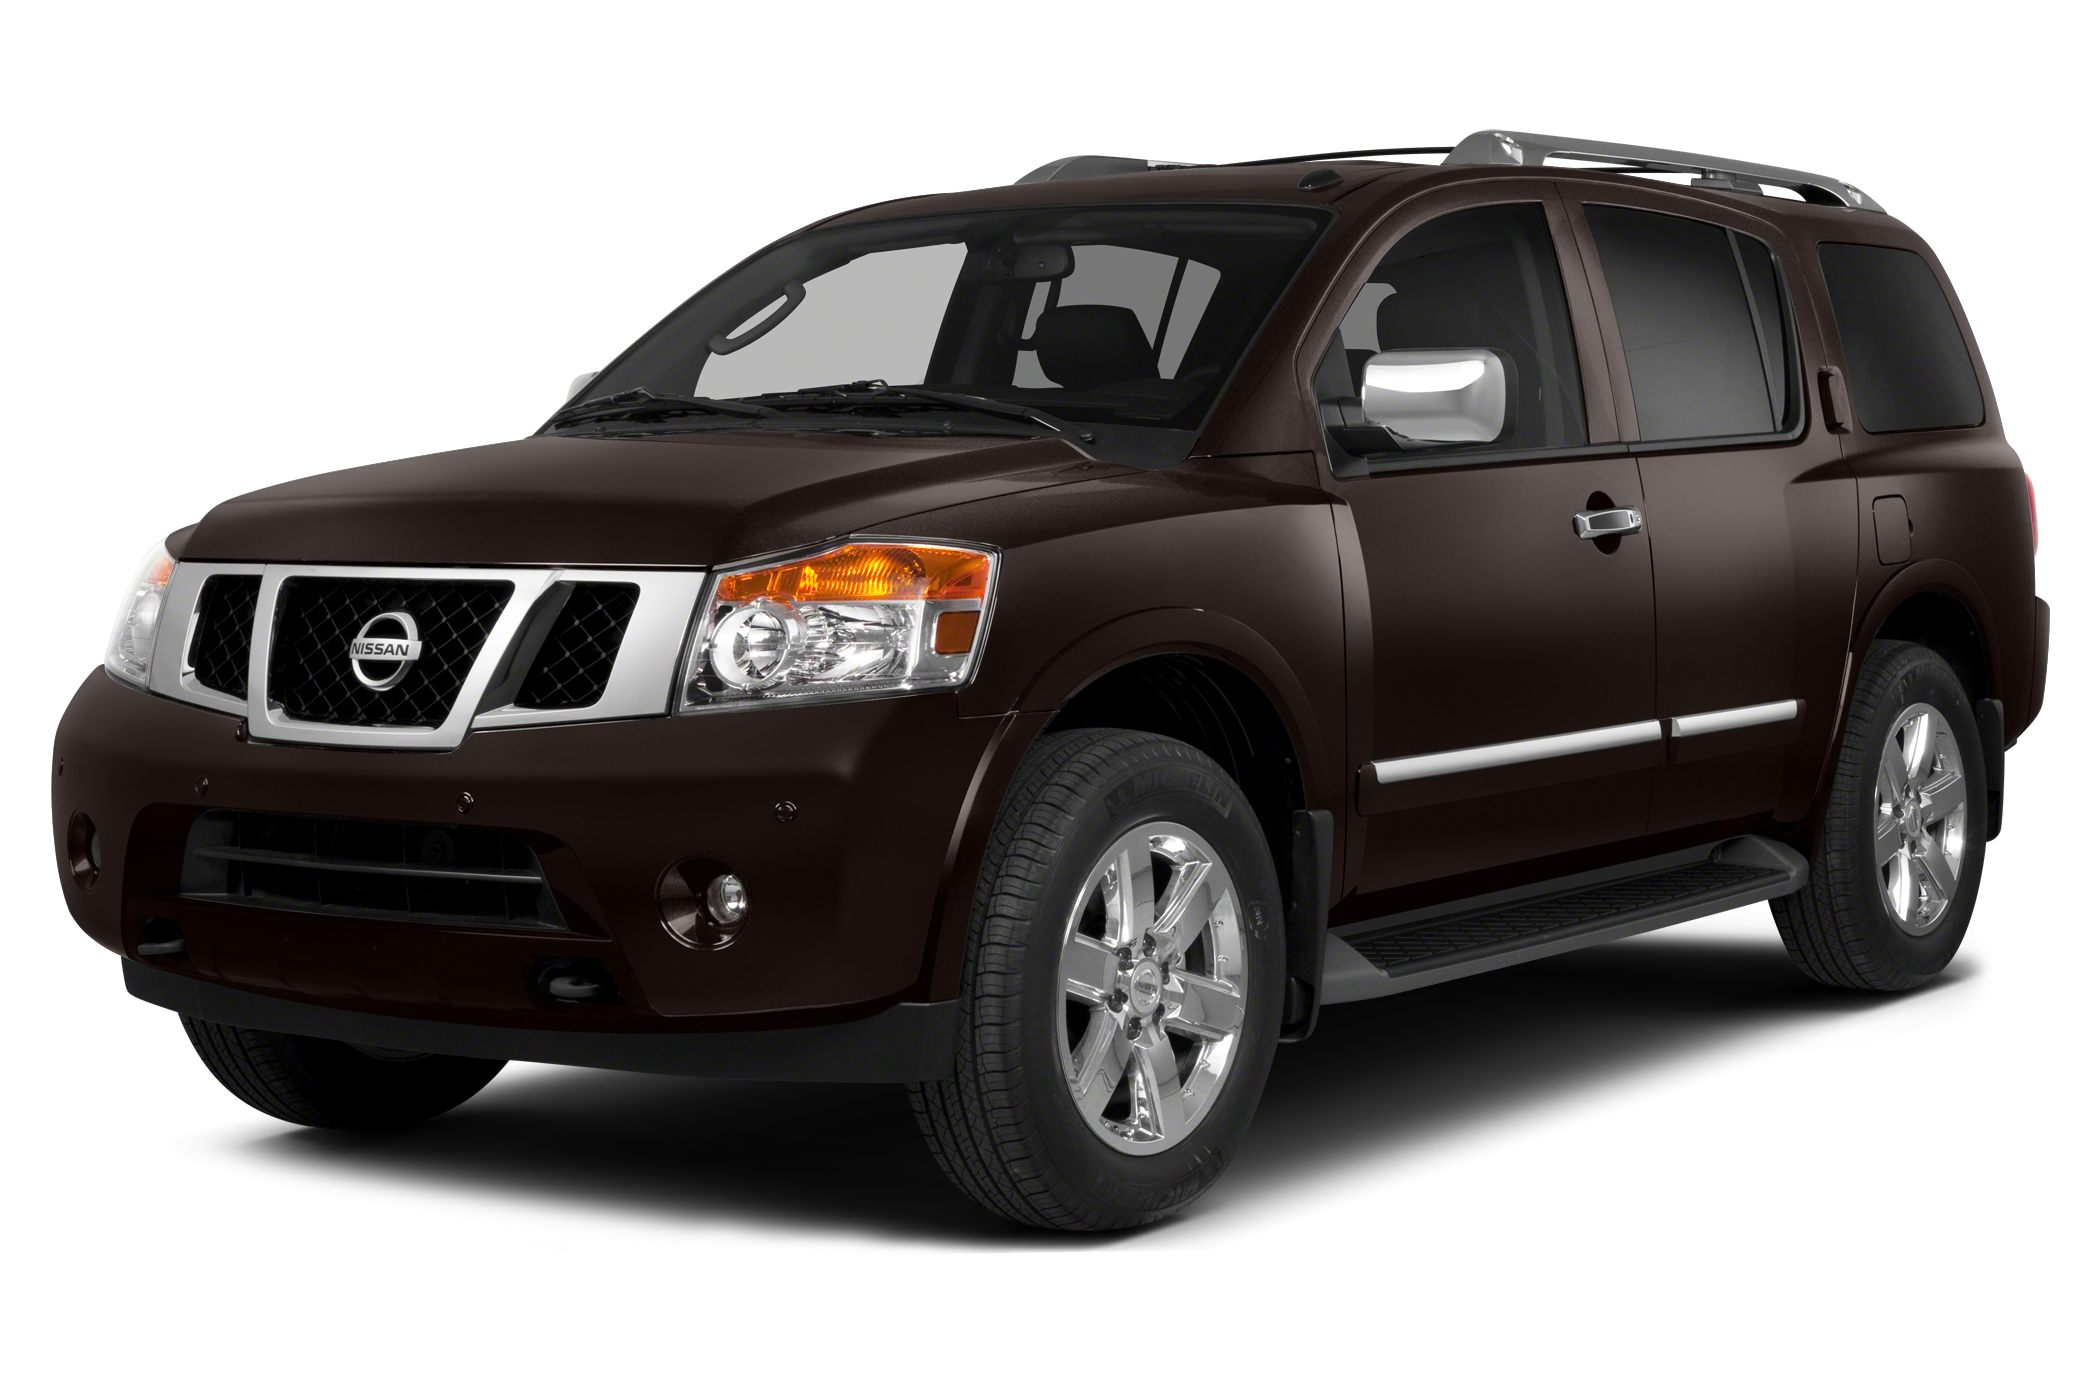 2014 Nissan Armada Platinum SUV for sale in Houston for $45,881 with 9,614 miles